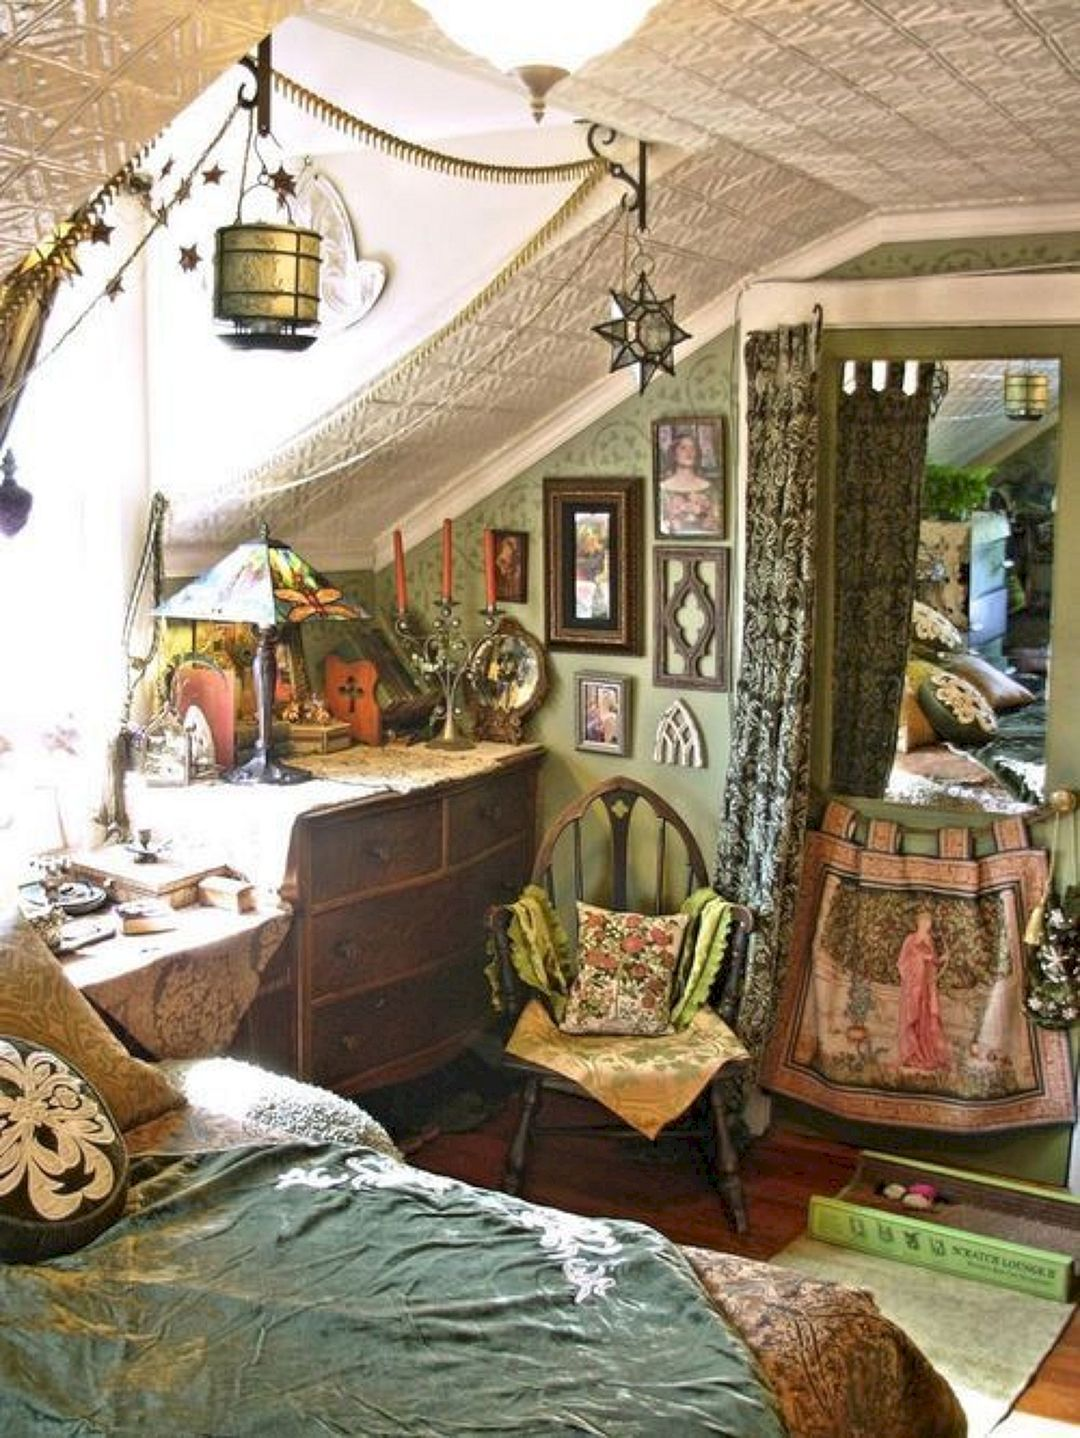 Hippie Schlafzimmer 40 Stylist Boho Chic Home And Apartment Decor Ideas